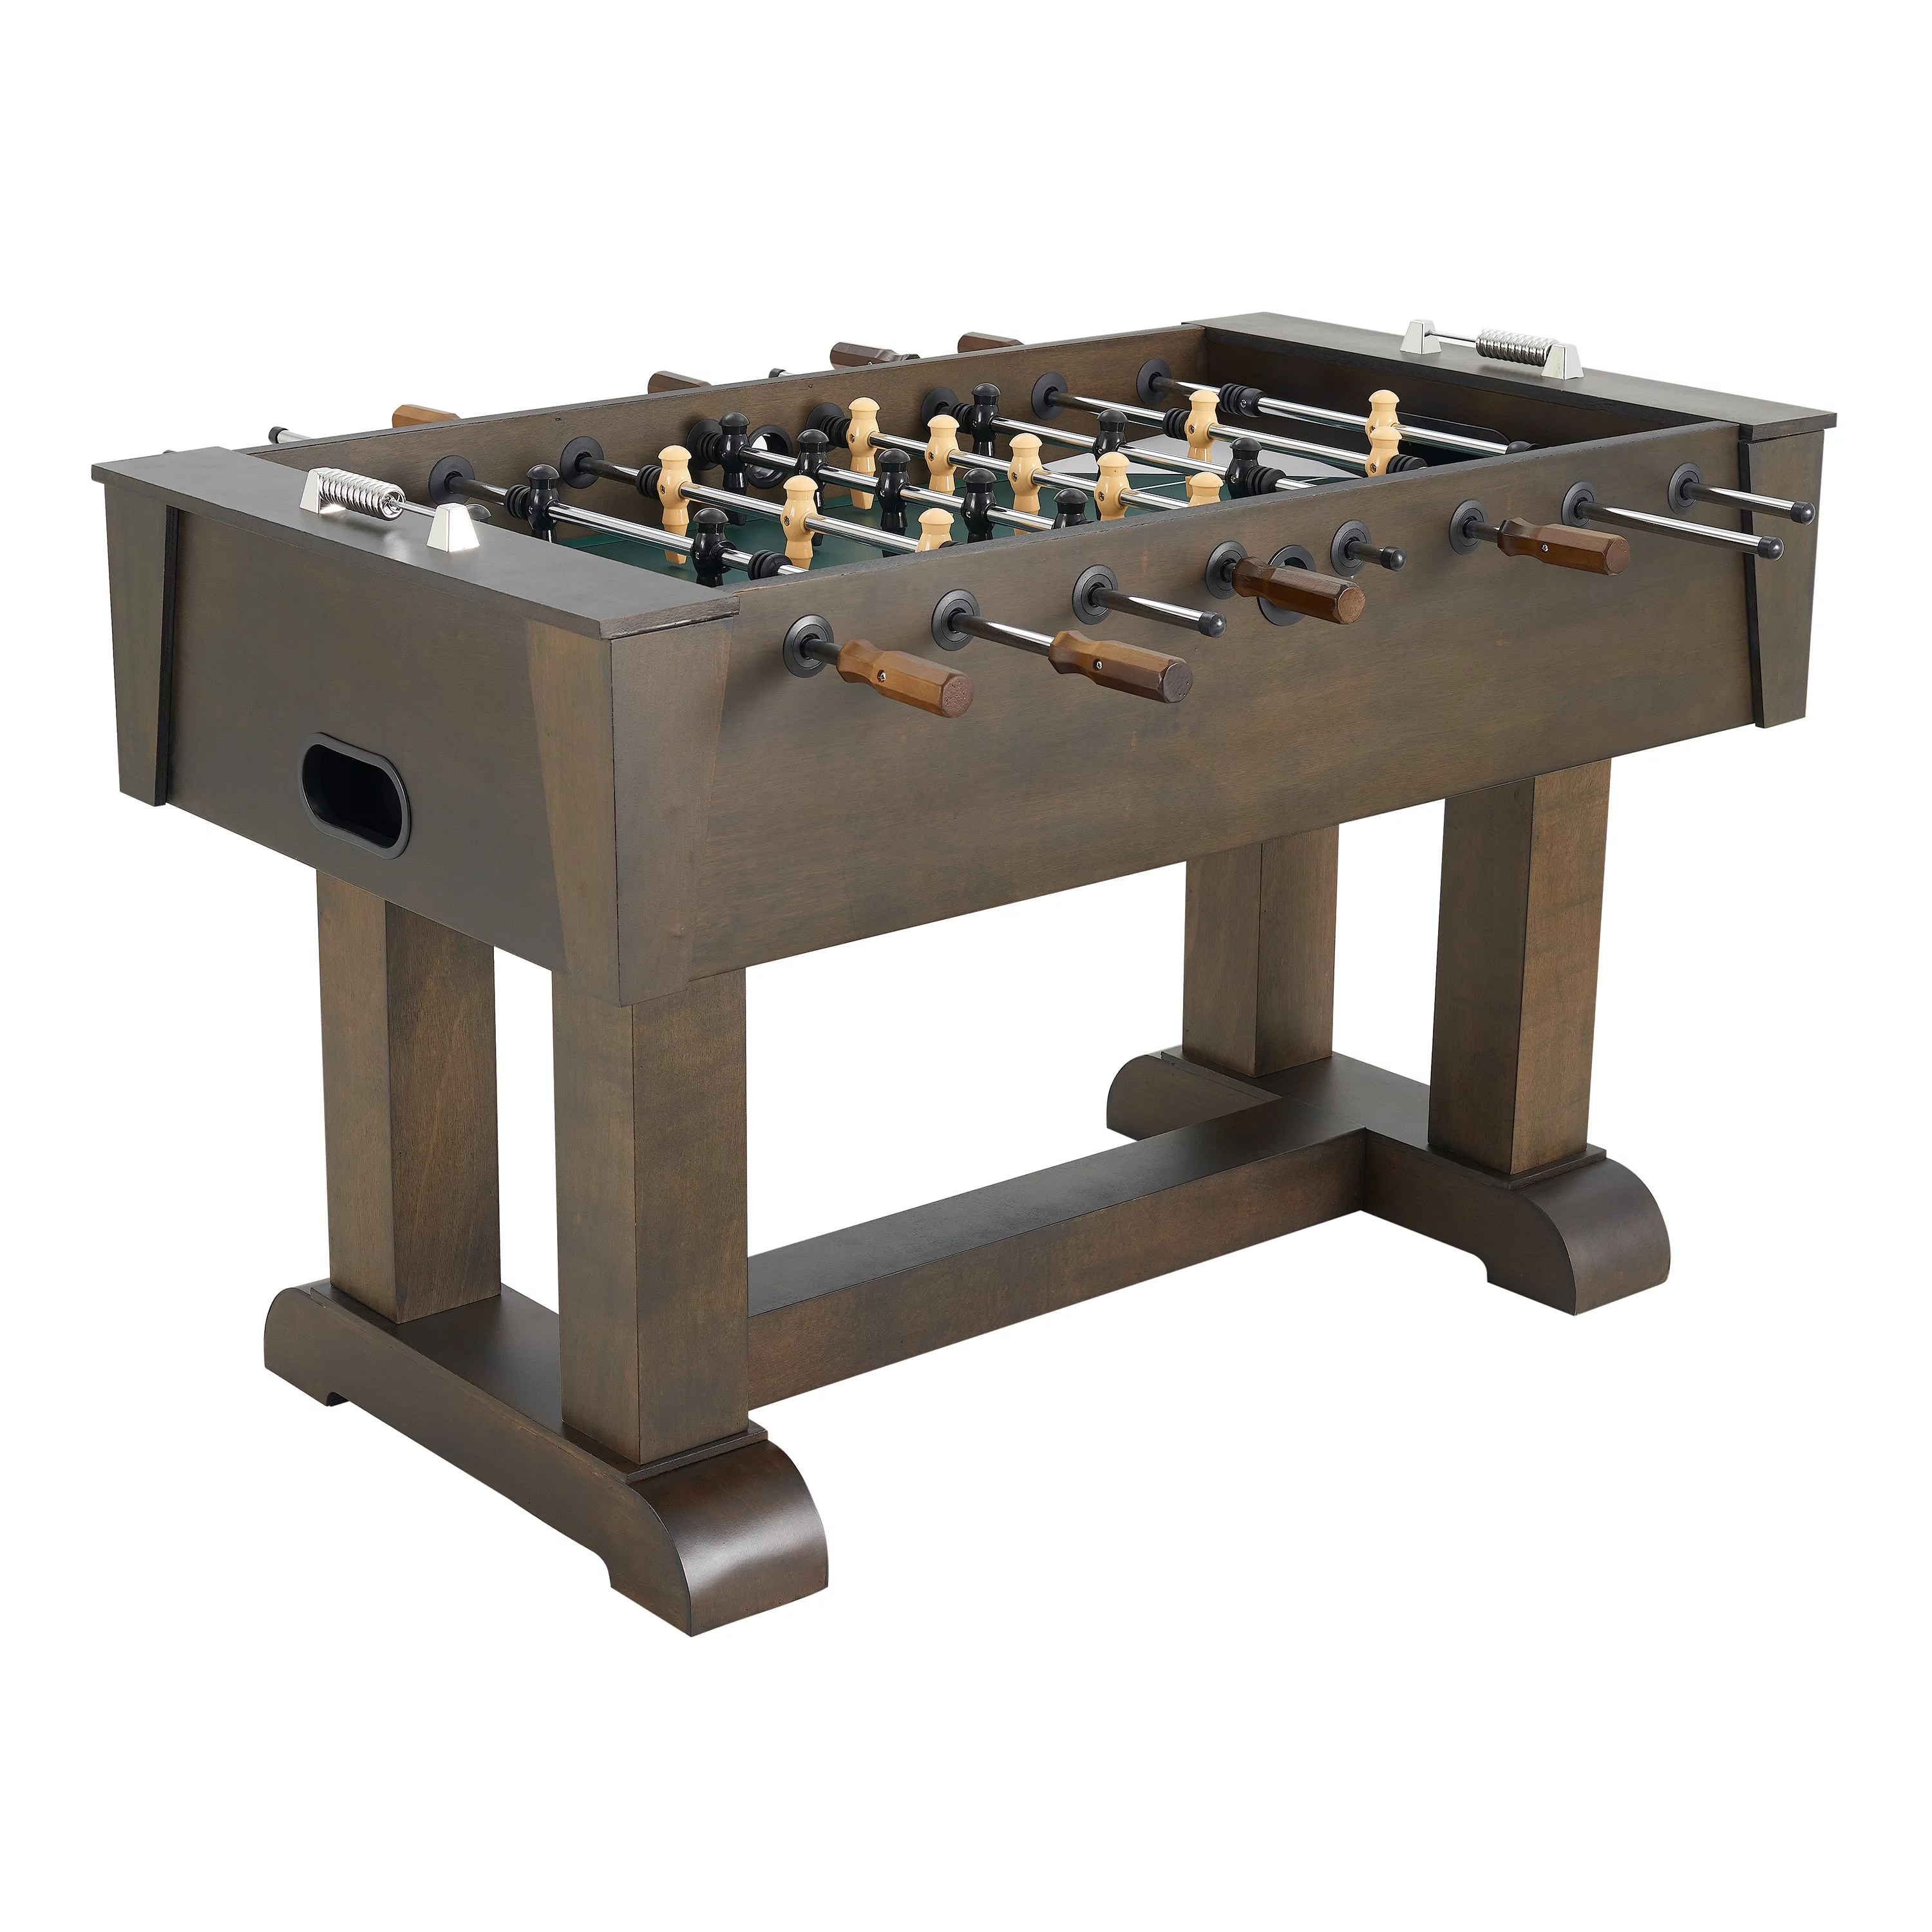 airzone official size wood foosball game table 56 walmart com